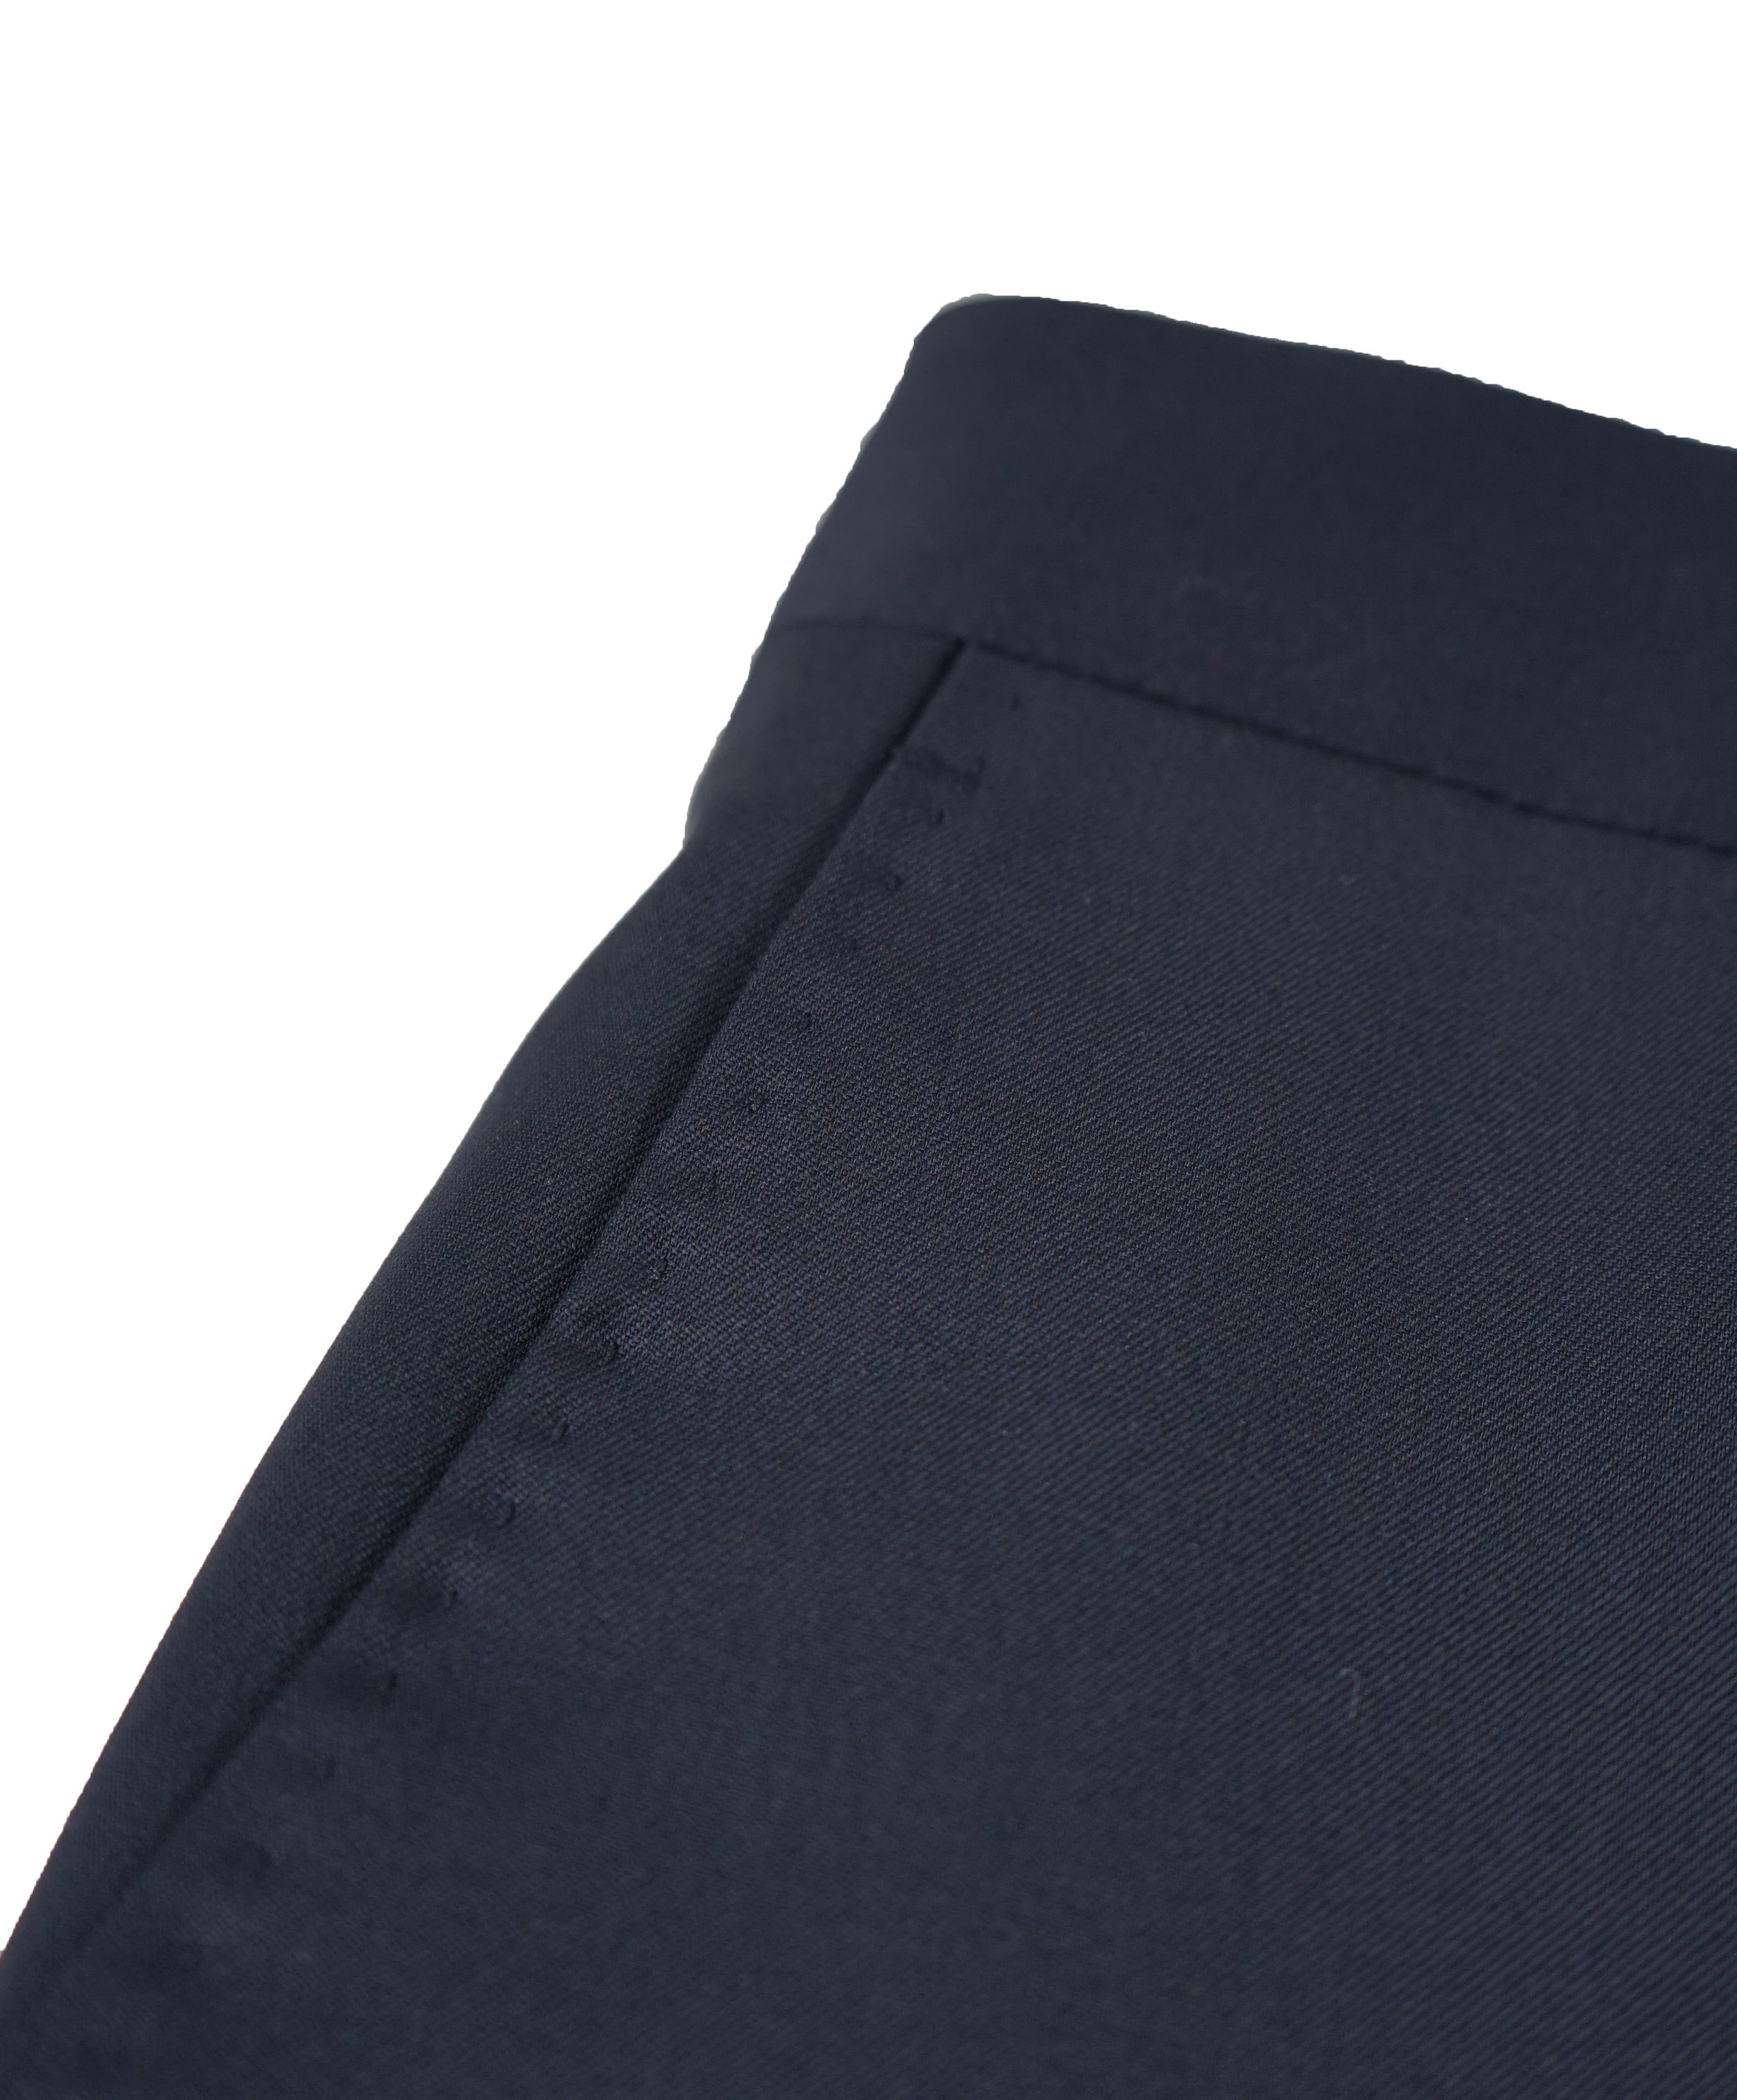 SAKS FIFTH AVE - Navy Wool / Silk MADE IN ITALY Flat Front Dress Pants - 34W